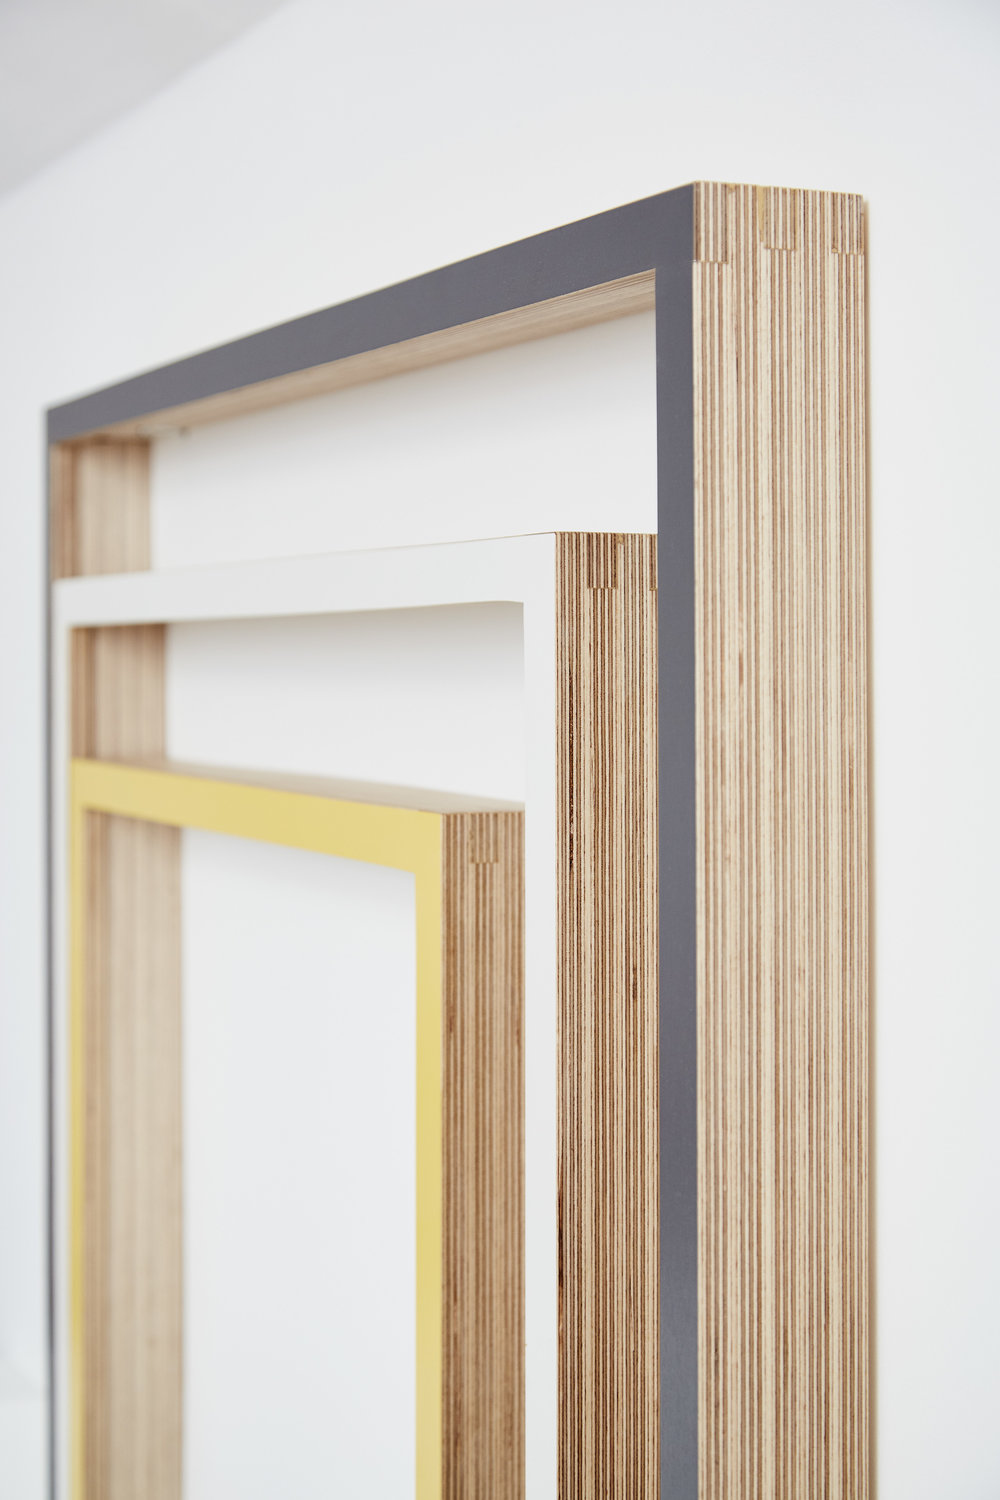 Picture frames made from finger jointed birch plywood.